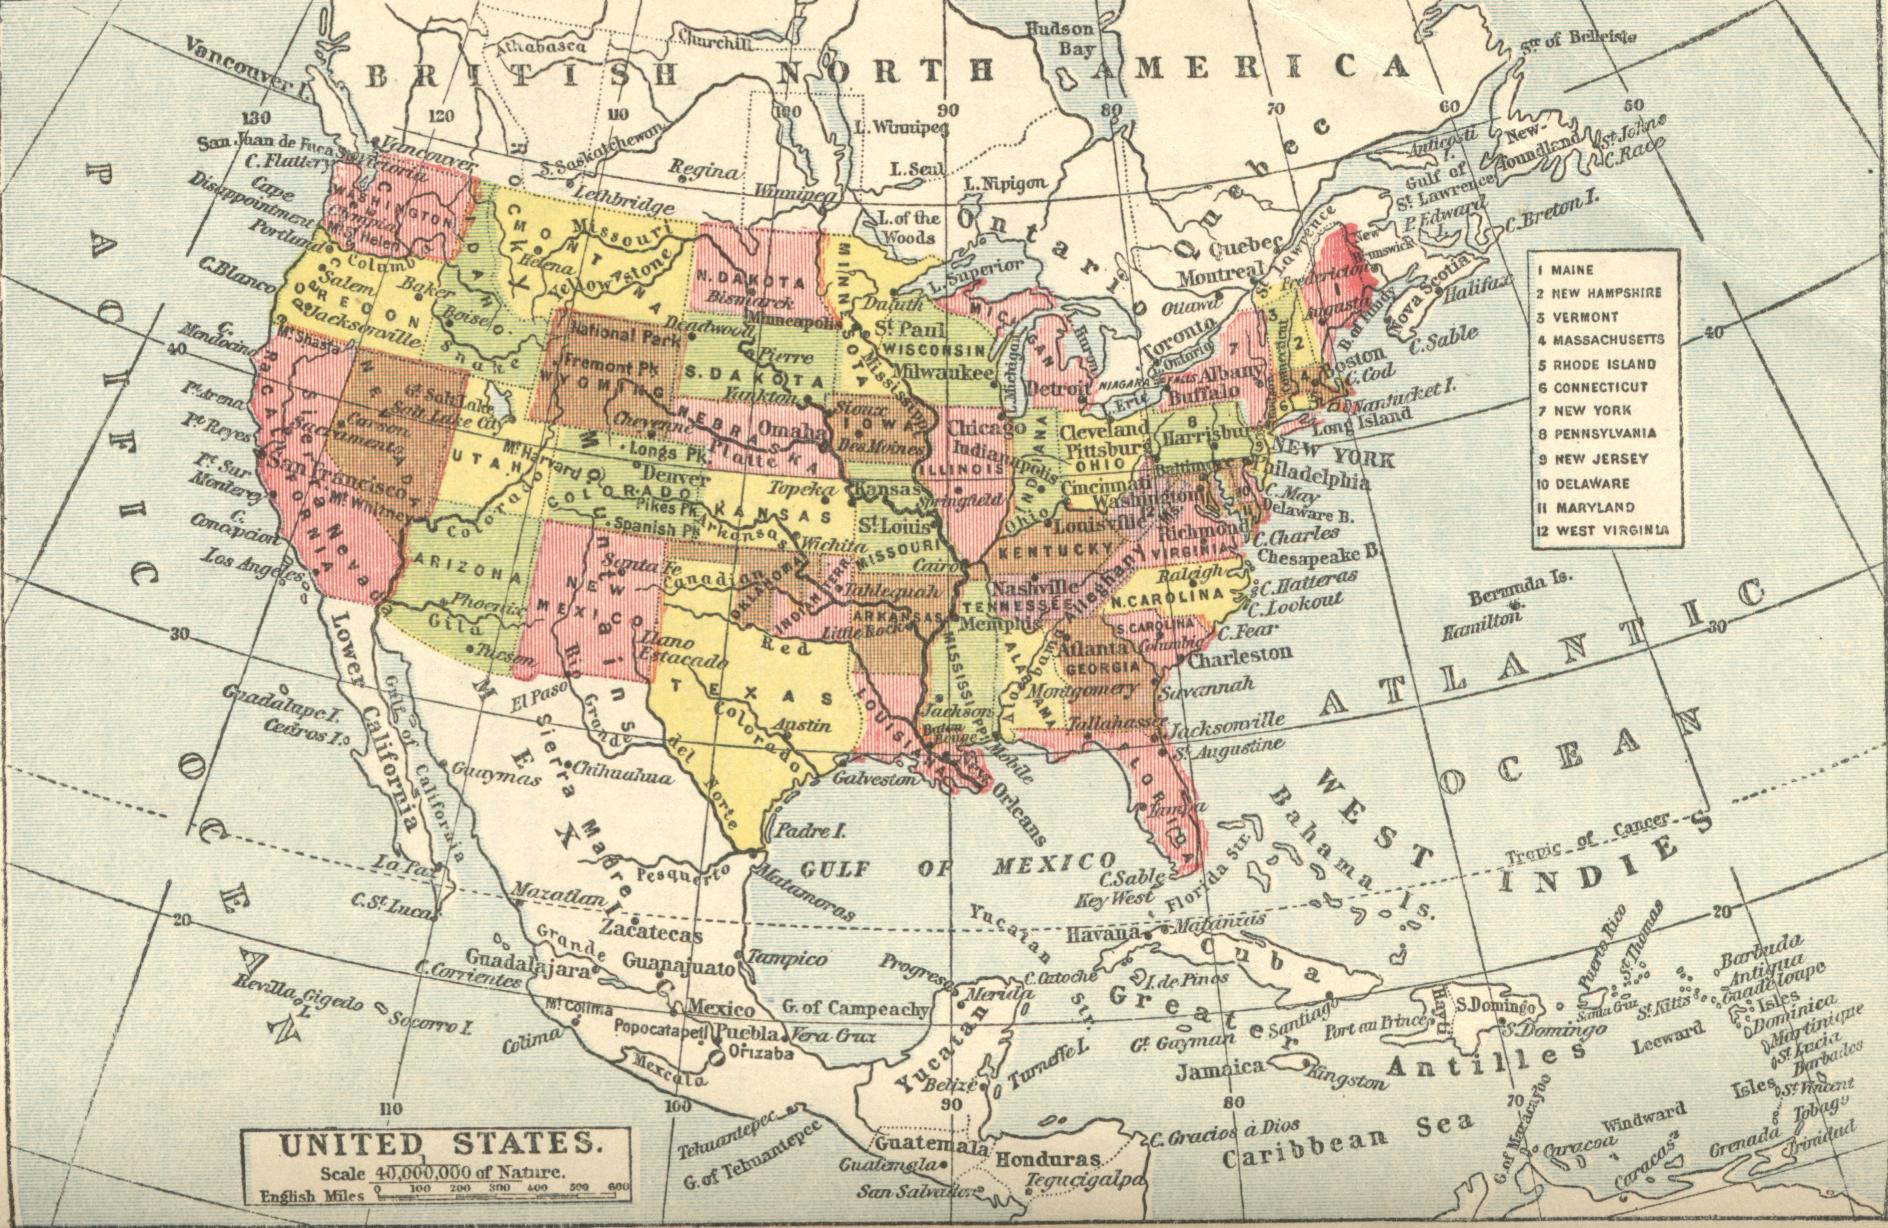 Map Of The United States Of America Also Showing Much Of Canada - United state of america map